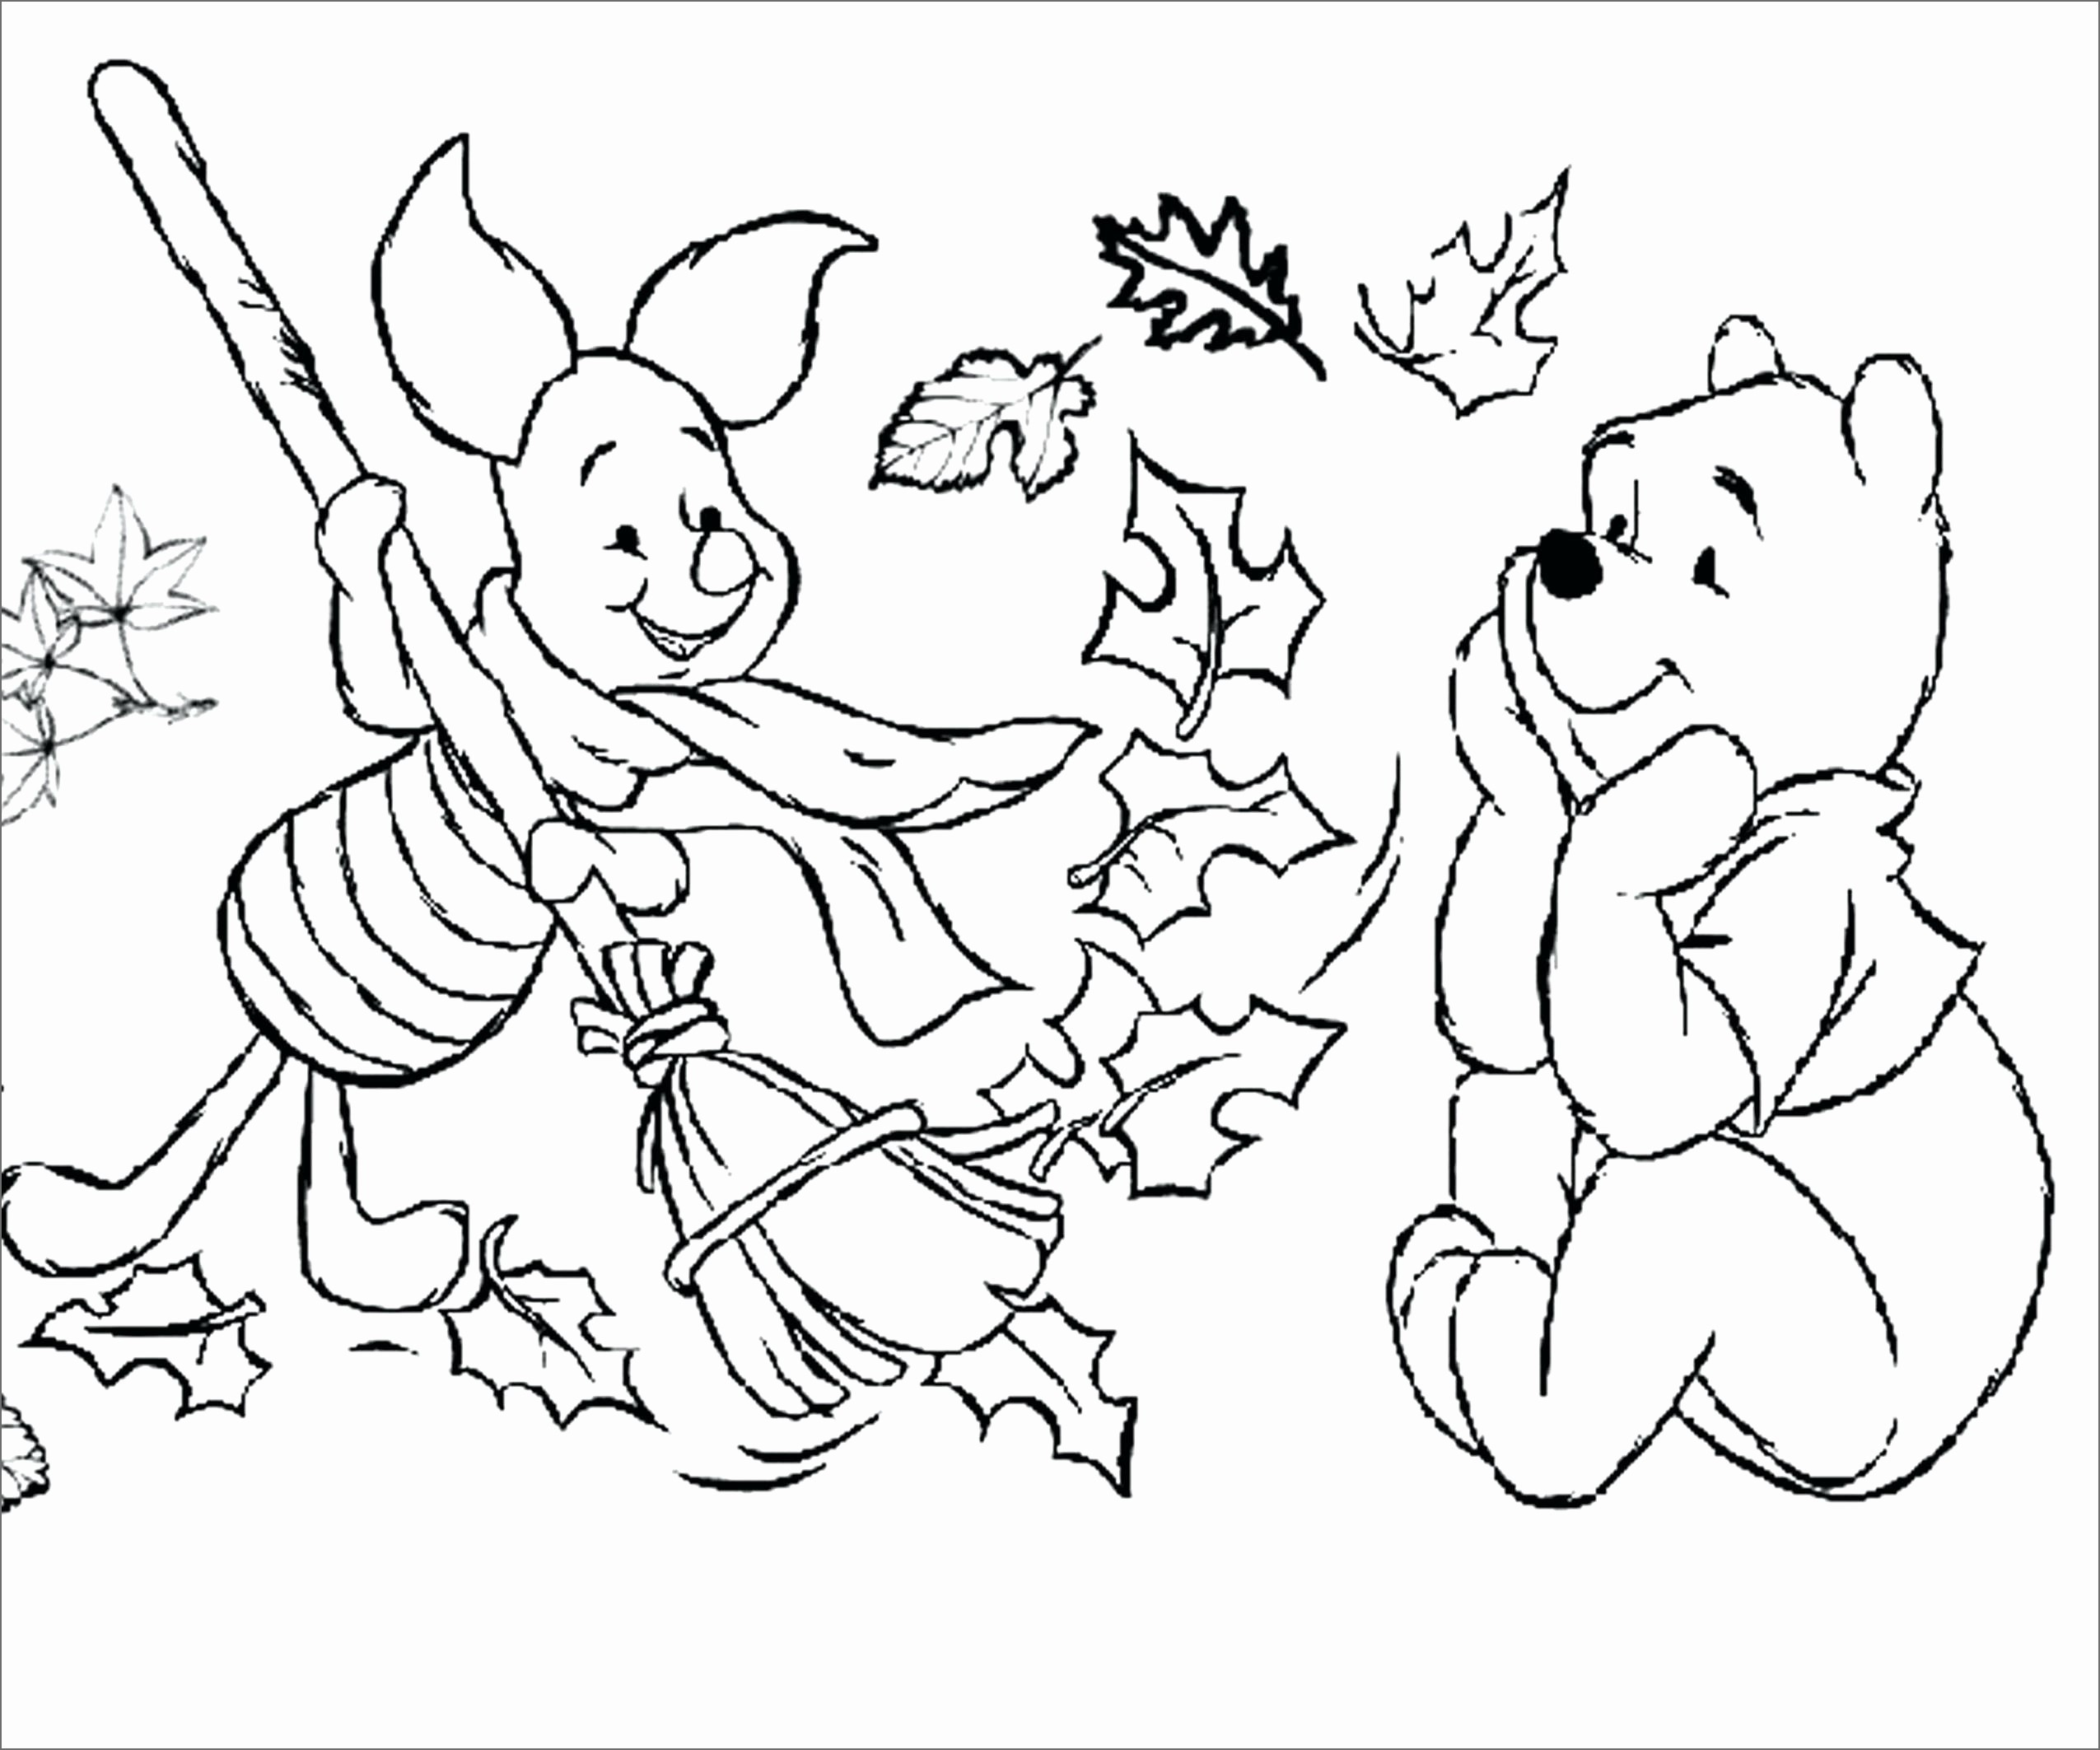 Harry Potter Coloring Pages New Harry Potter Coloring Pages Online Myobfit